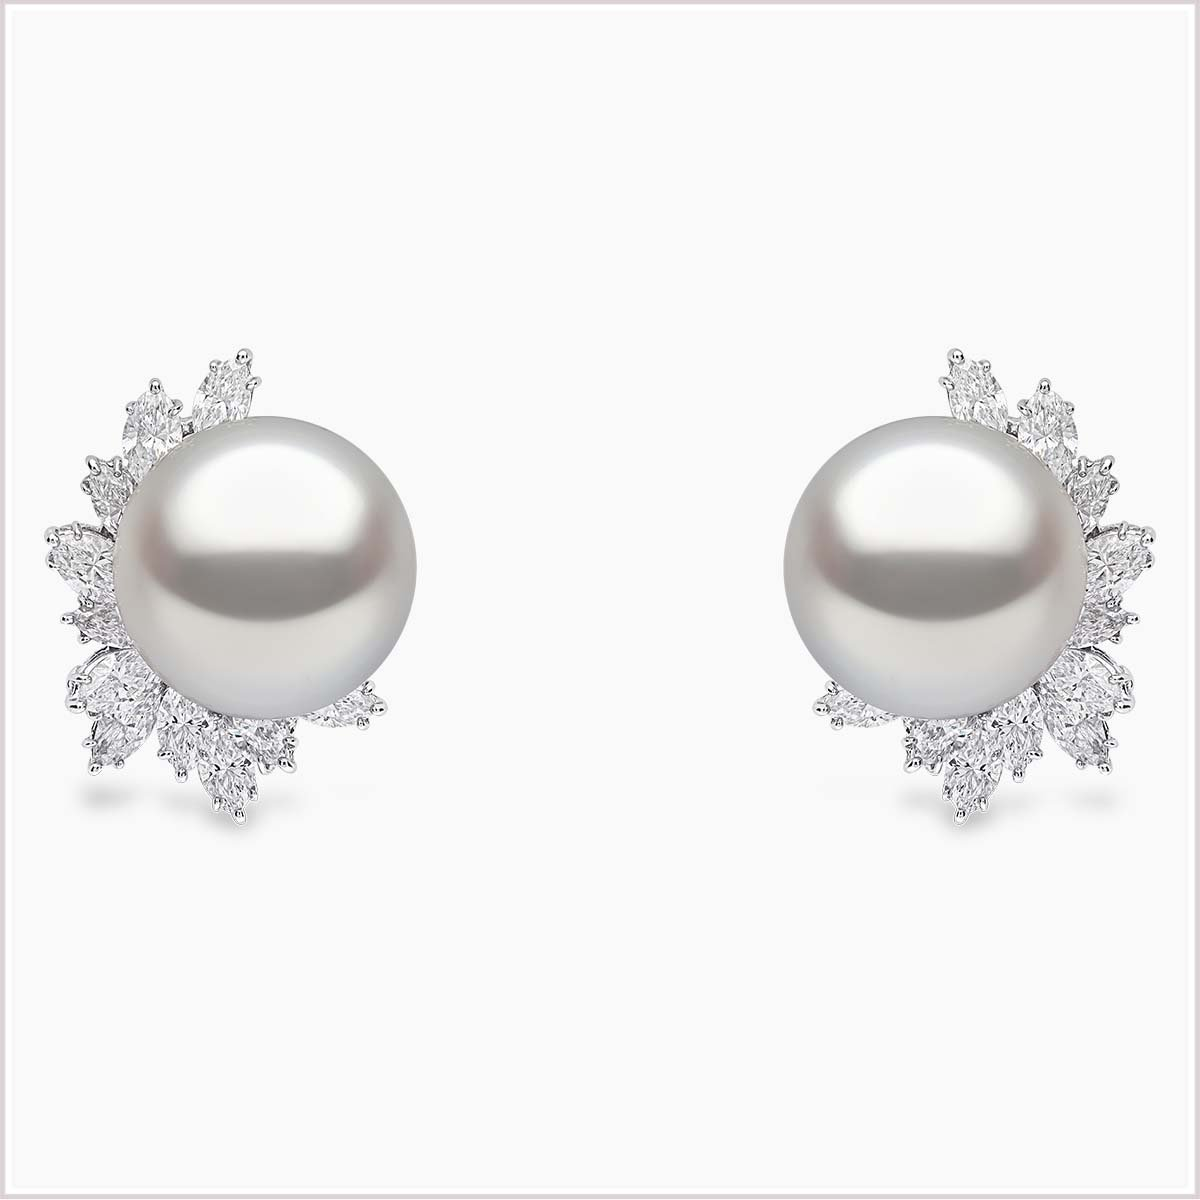 Yoko London Mayfair Diamond and South Sea Pearl Earrings